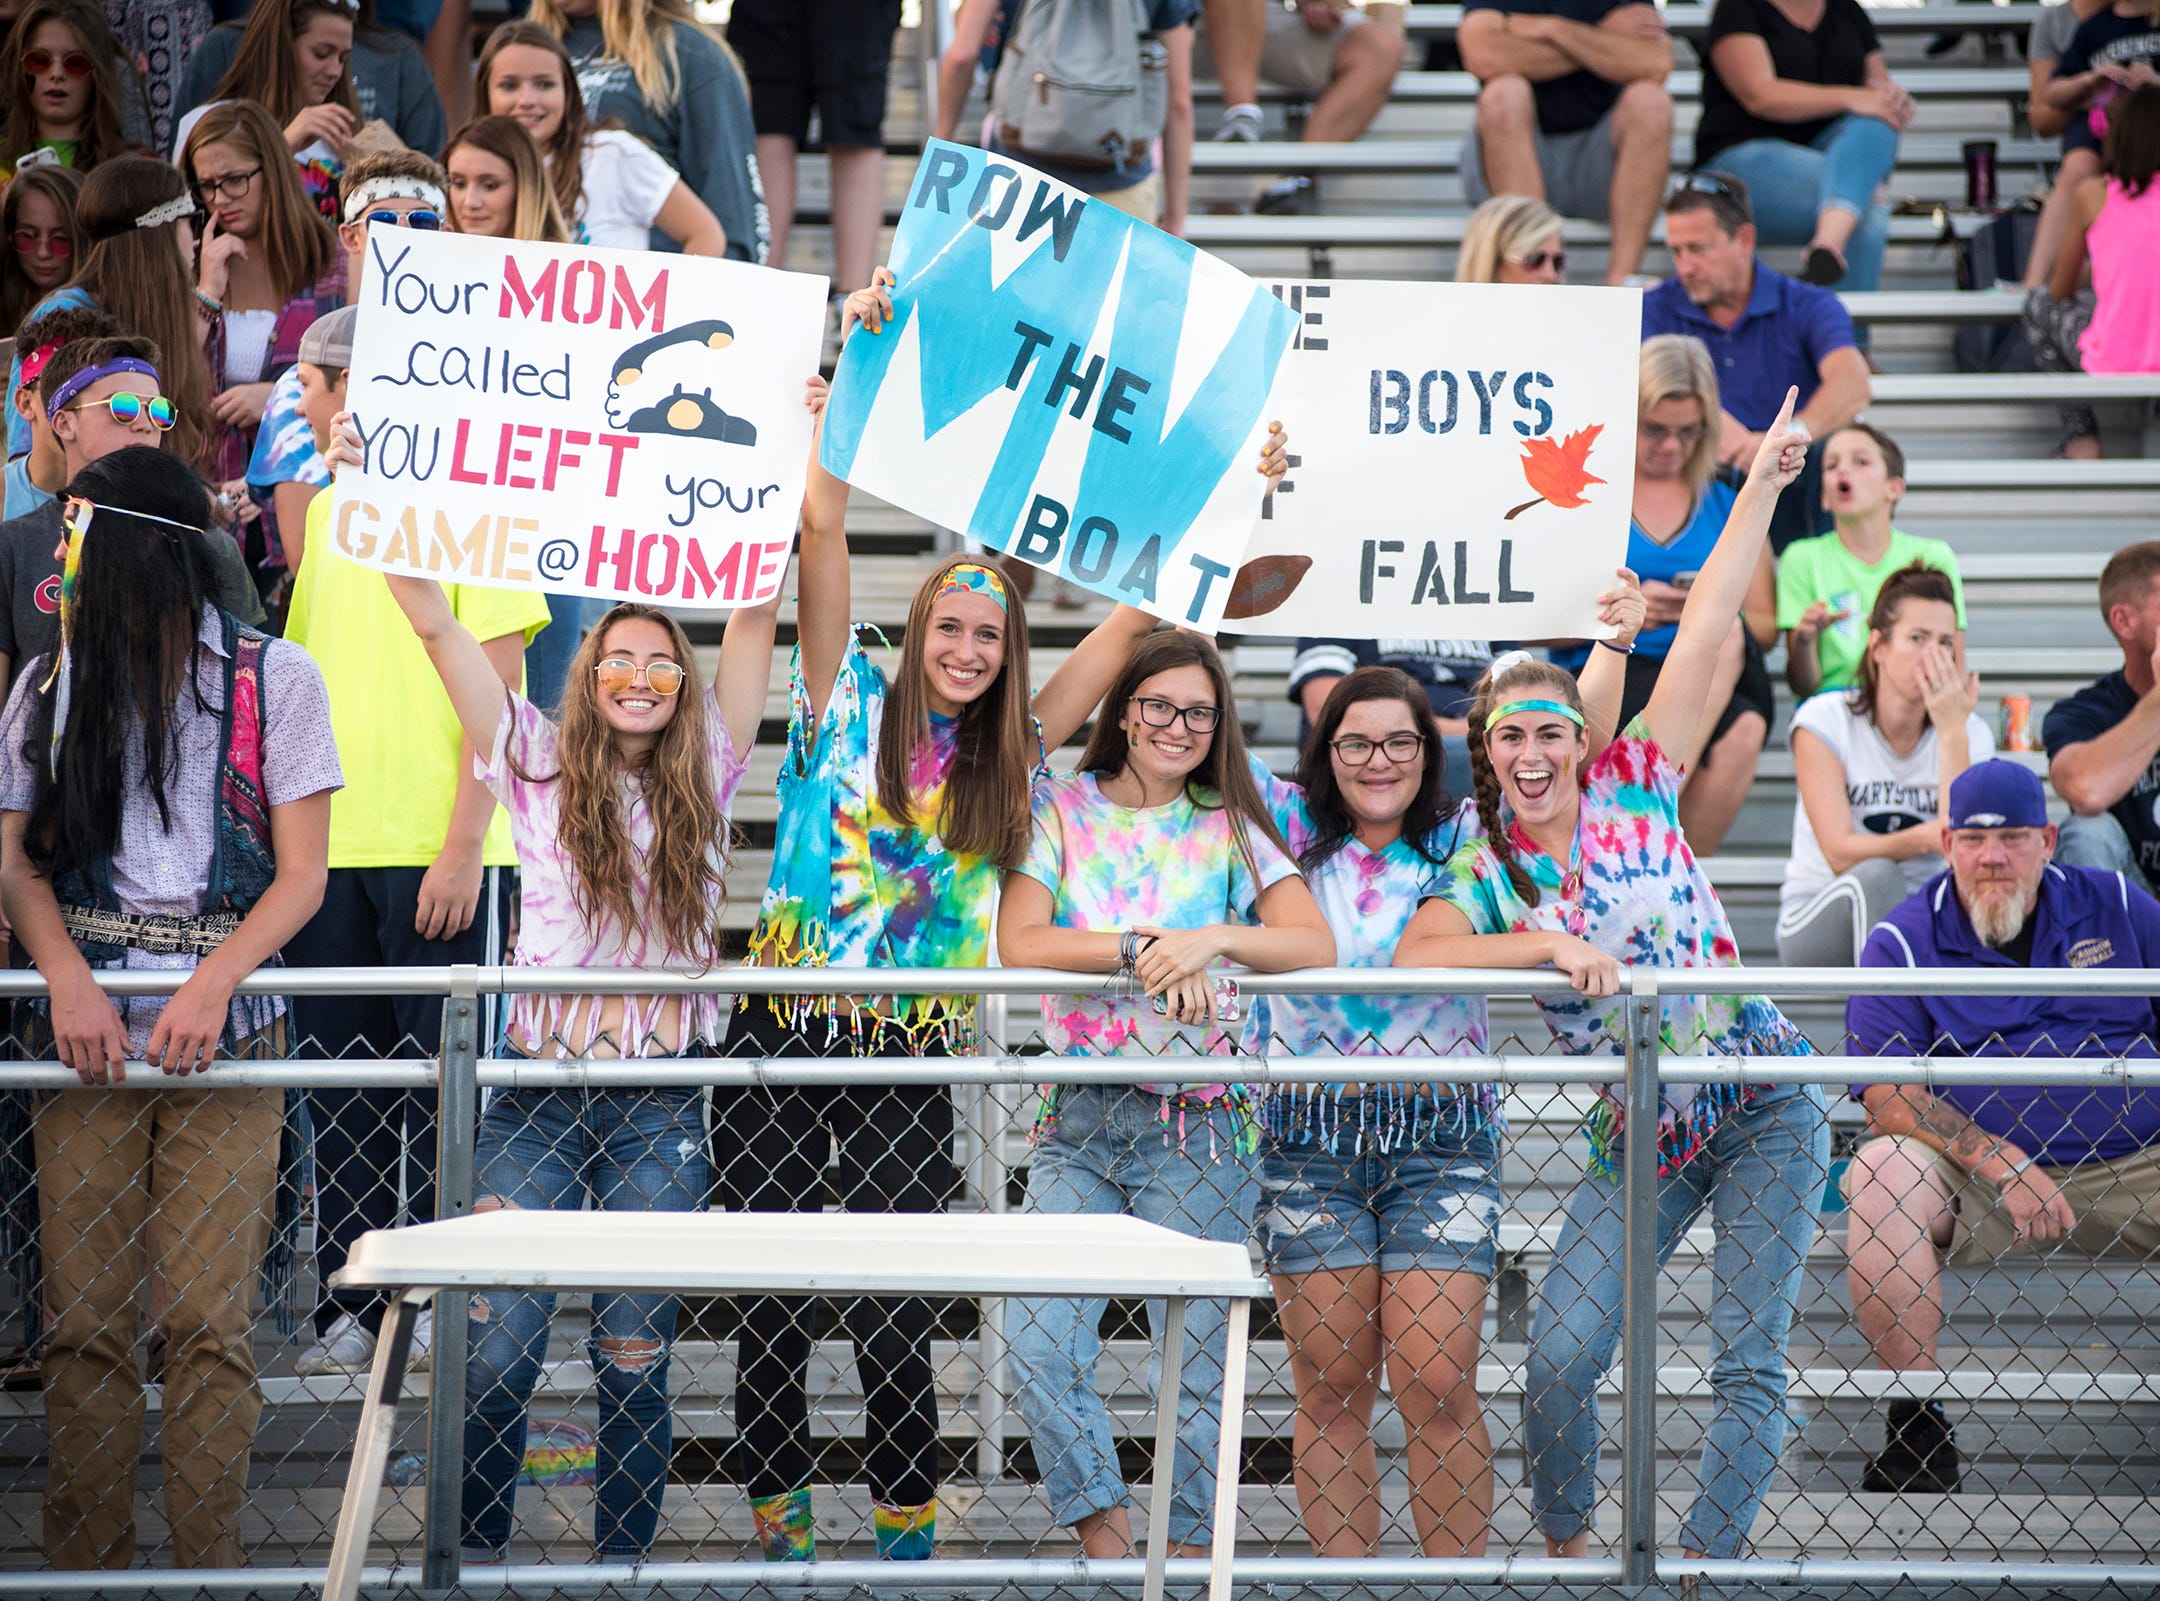 Marysville students hold up signs and cheer during halftime of the Vikings' game against Richmond High School Thursday, Aug. 23, 2018, at Marysville High School.